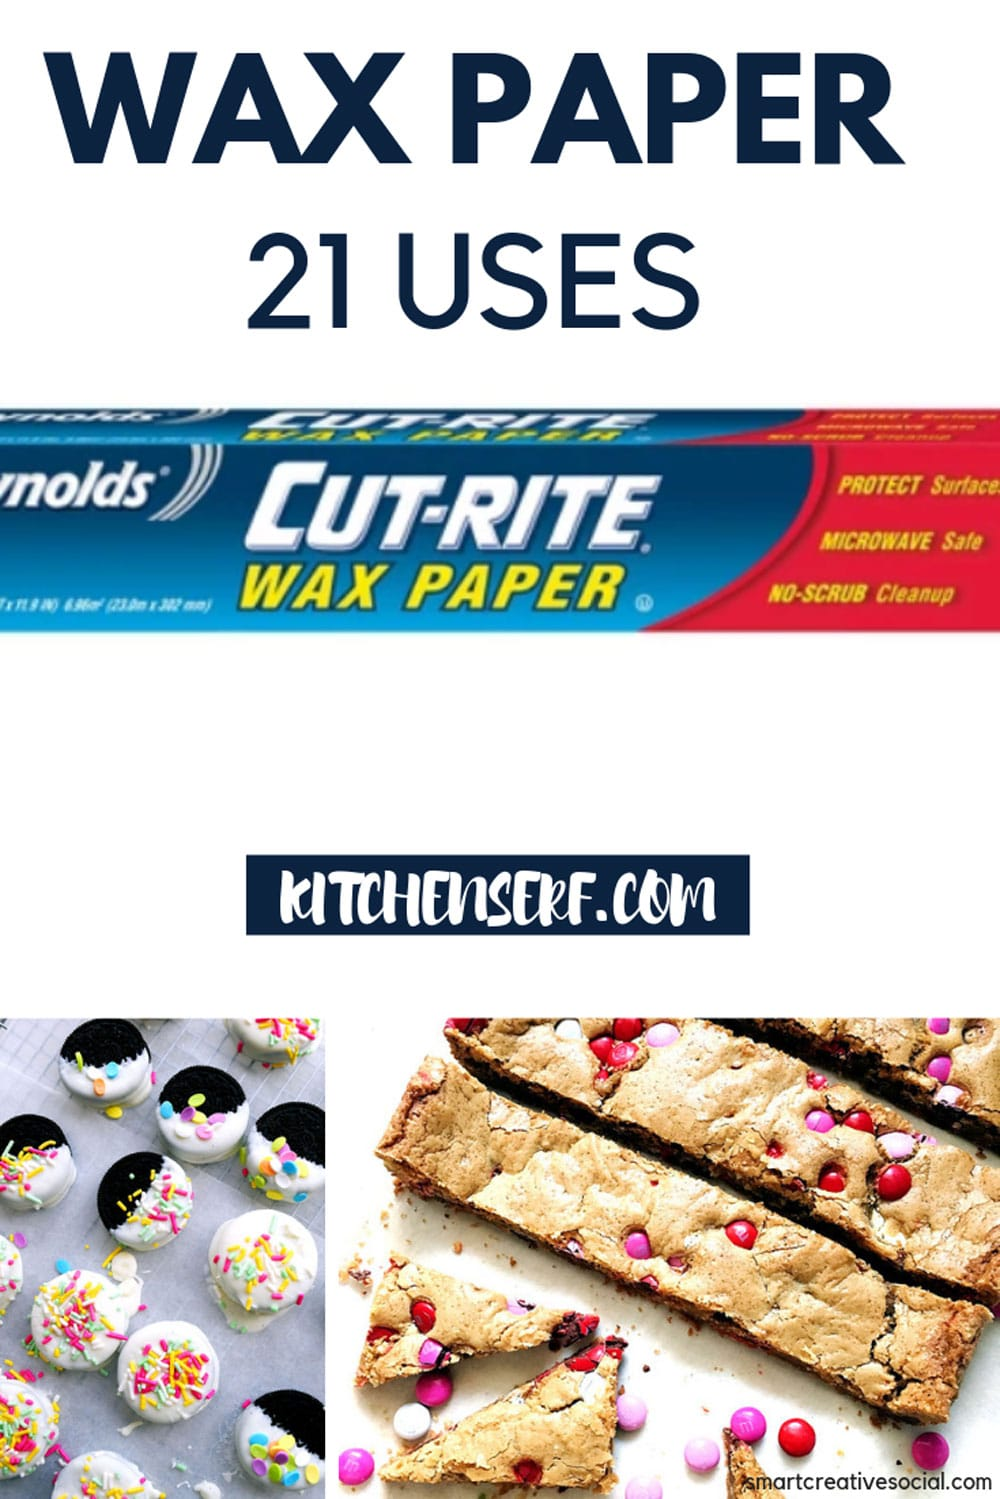 Wax paper is one of my kitchen workhorses. Click over to kitchenserf.com to see all the tasks that wax paper will make easier for you. #diy #clean #kitchen